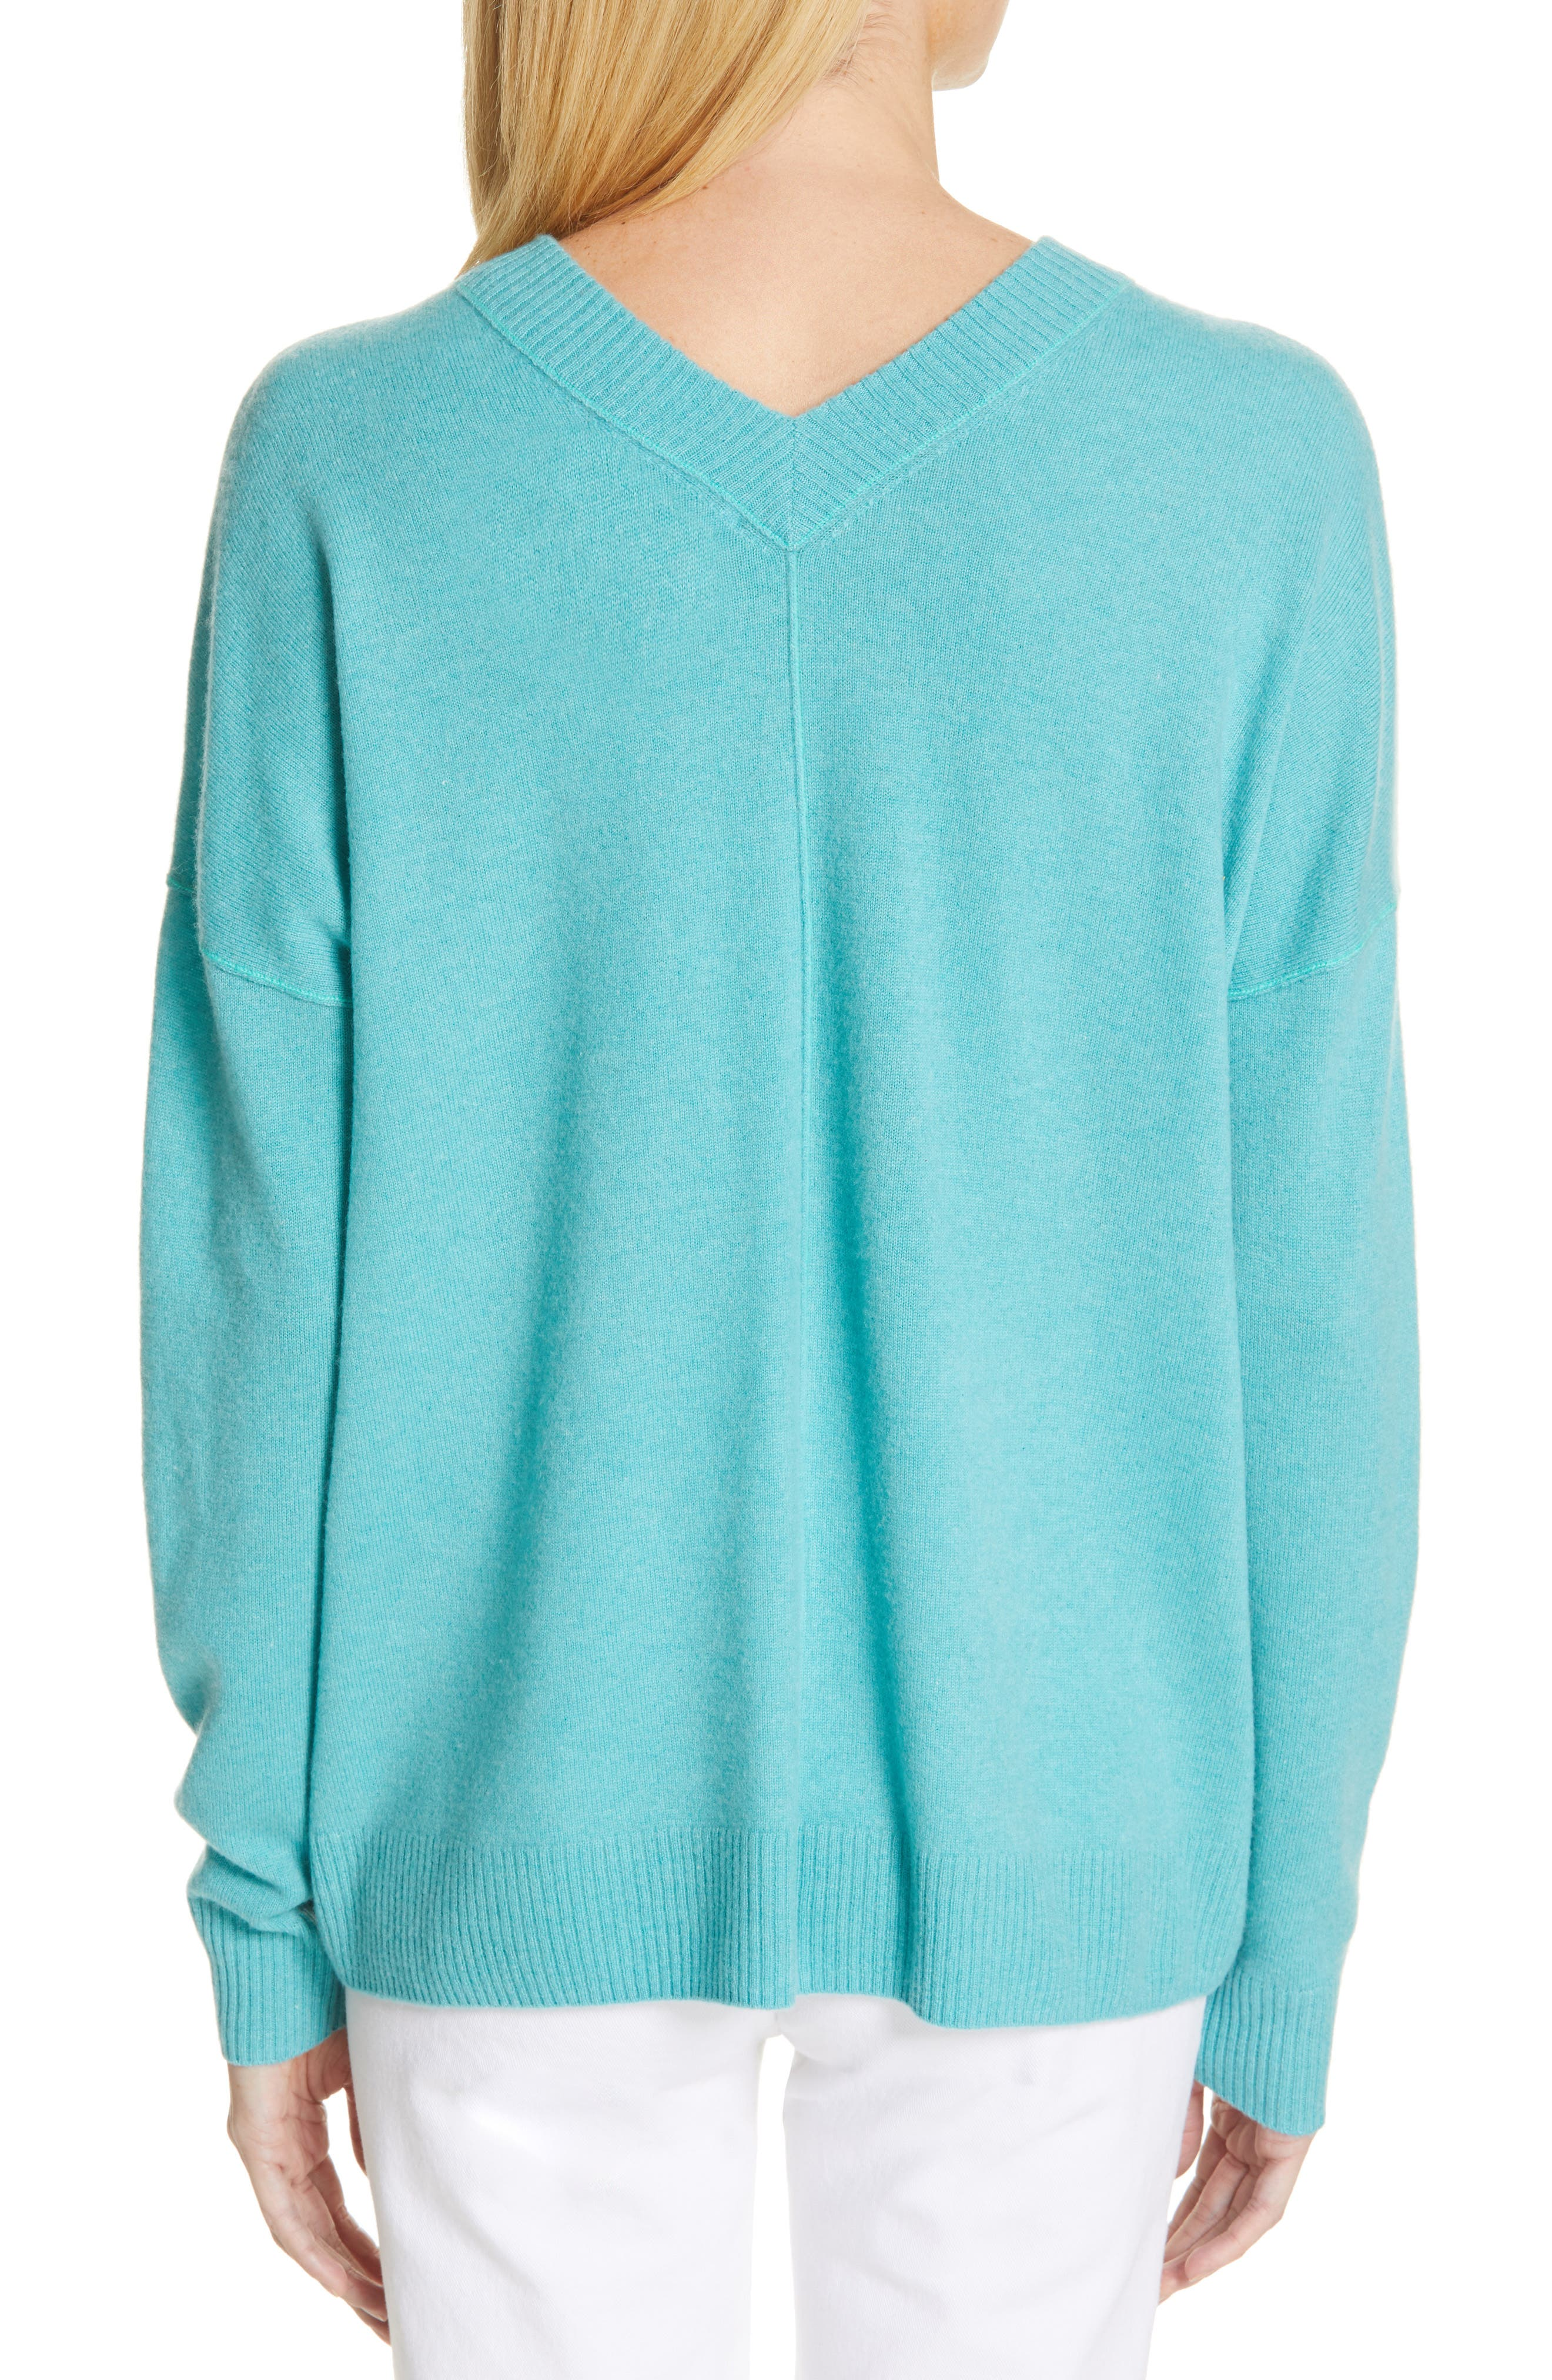 NORDSTROM SIGNATURE, Cashmere Double V-Neck Pullover, Alternate thumbnail 2, color, TEAL PORCELAIN